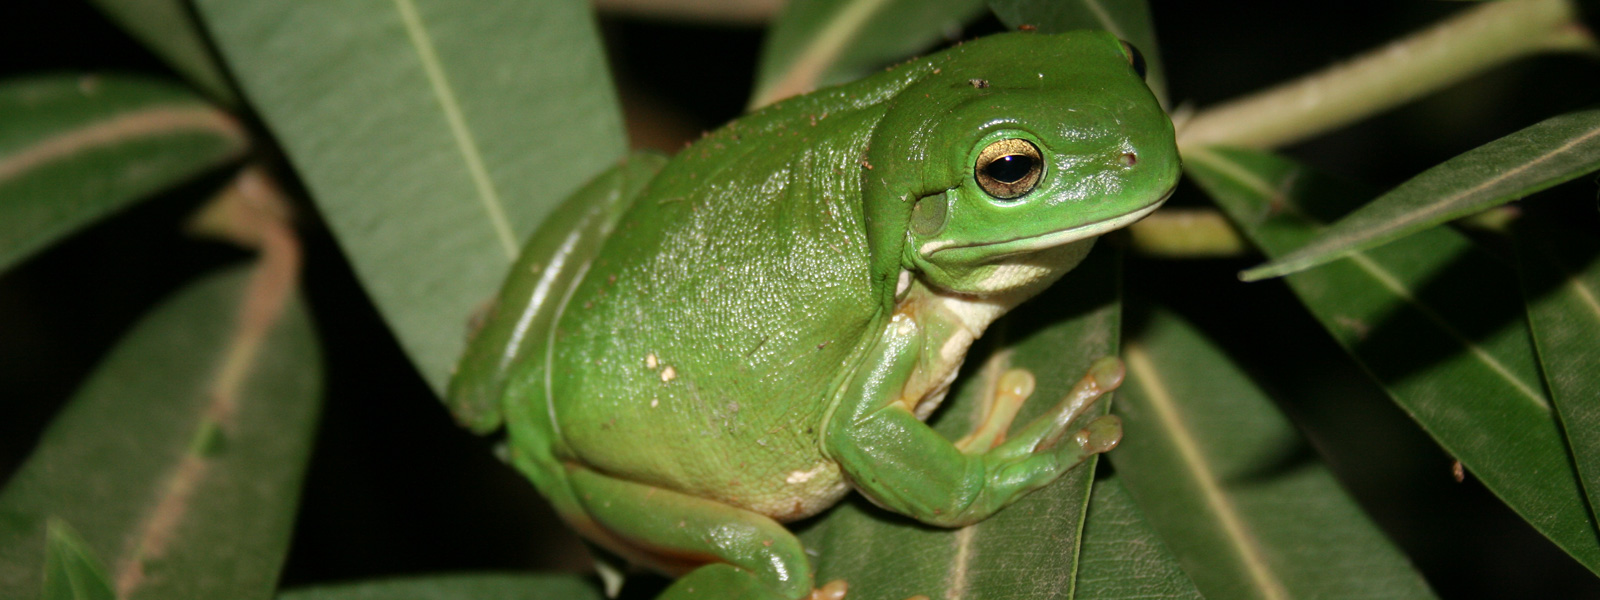 Green Tree Frog Credit: Emily Sephton